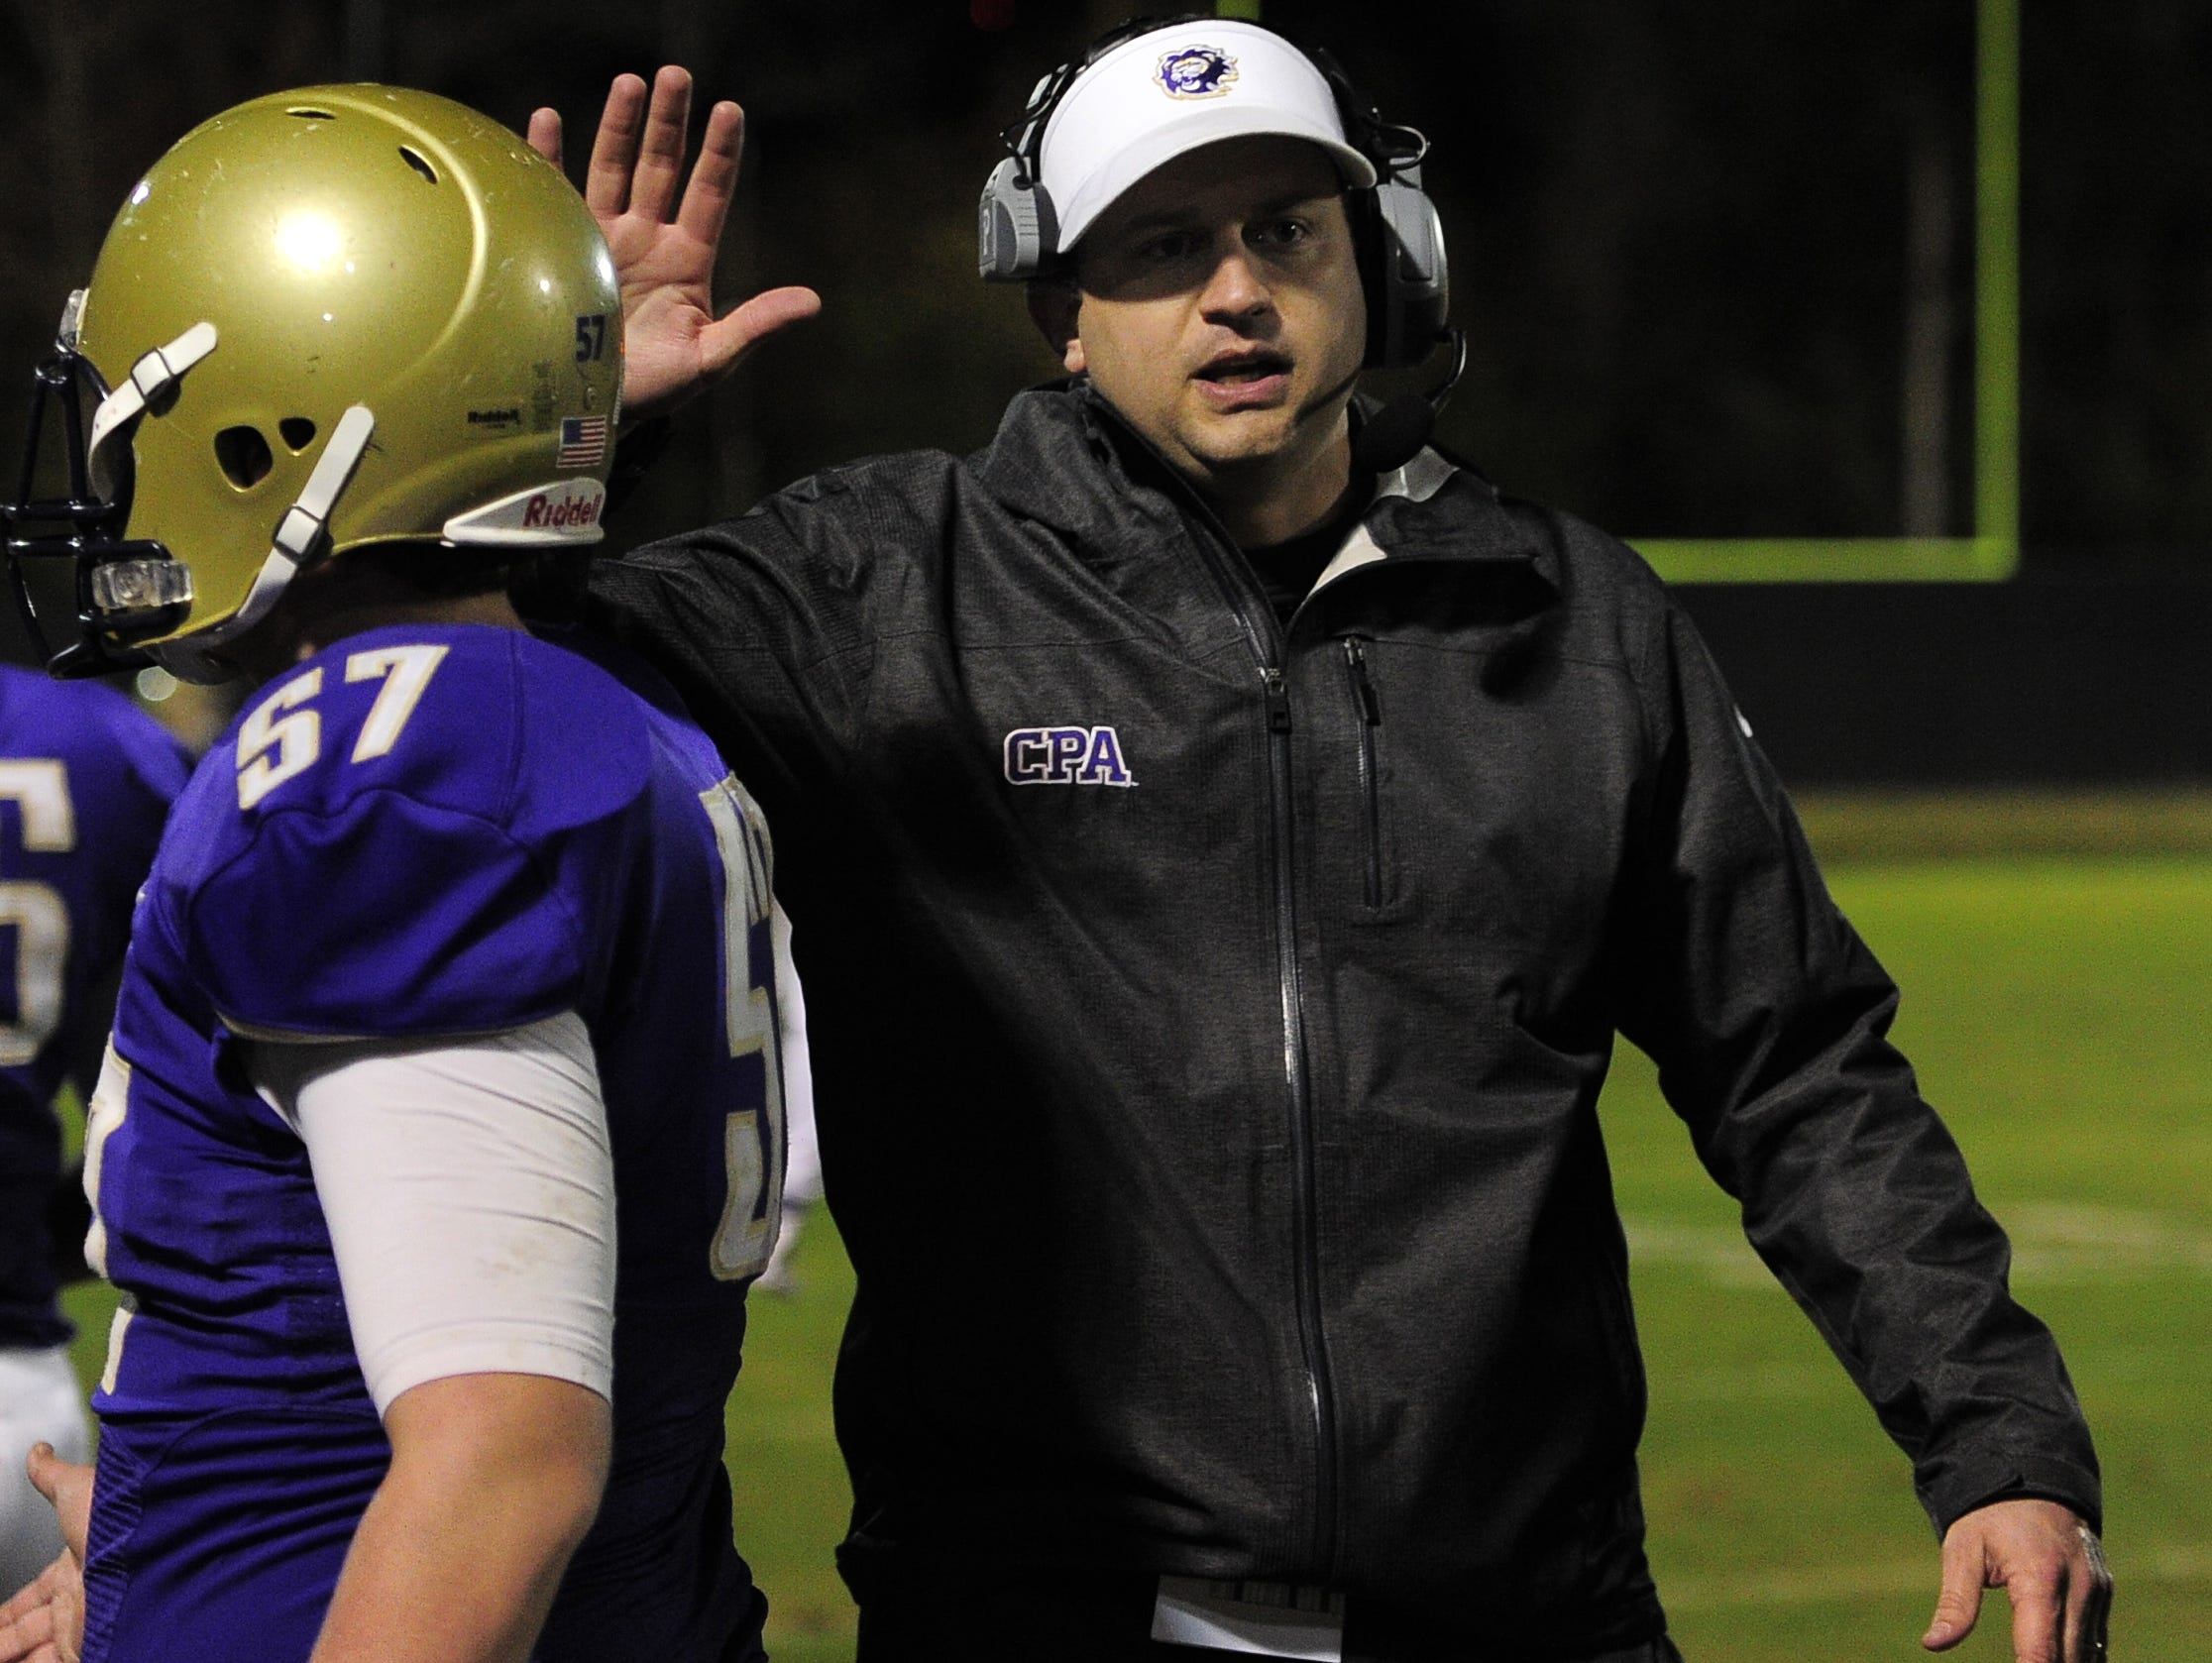 Coach Ingle Martin has compiled a 67-6 record in five seasons at CPA